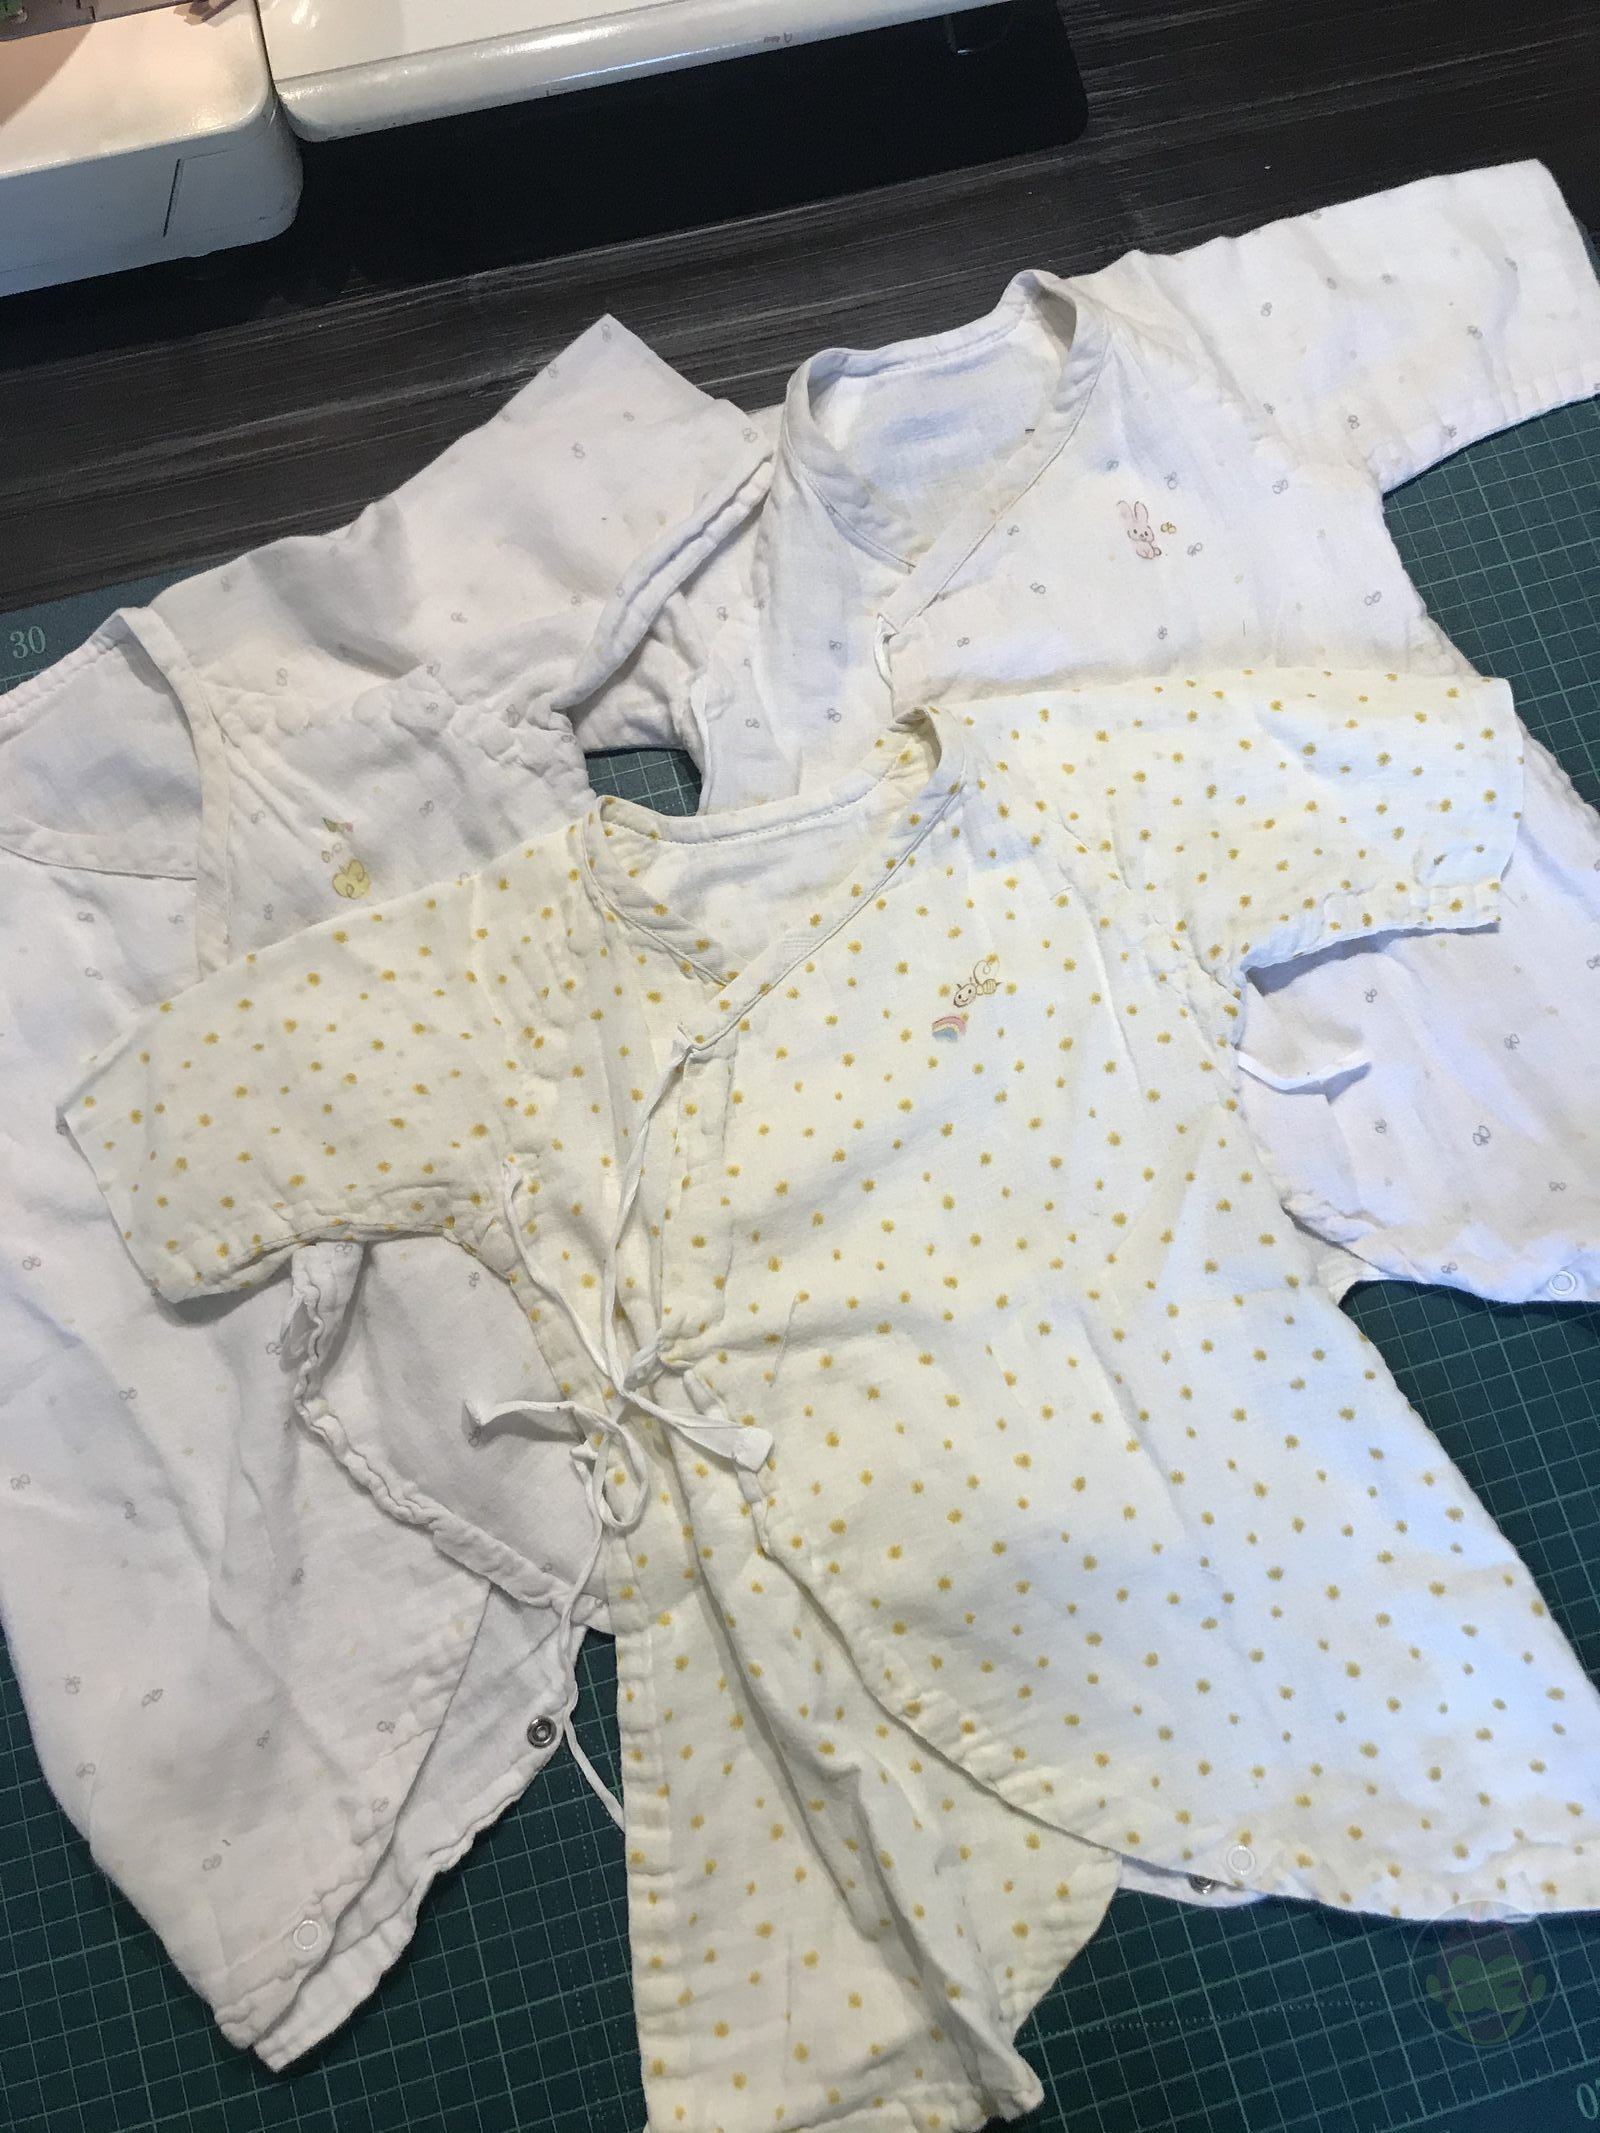 Baby-Clothes-remade-into-new-items-02.jpeg